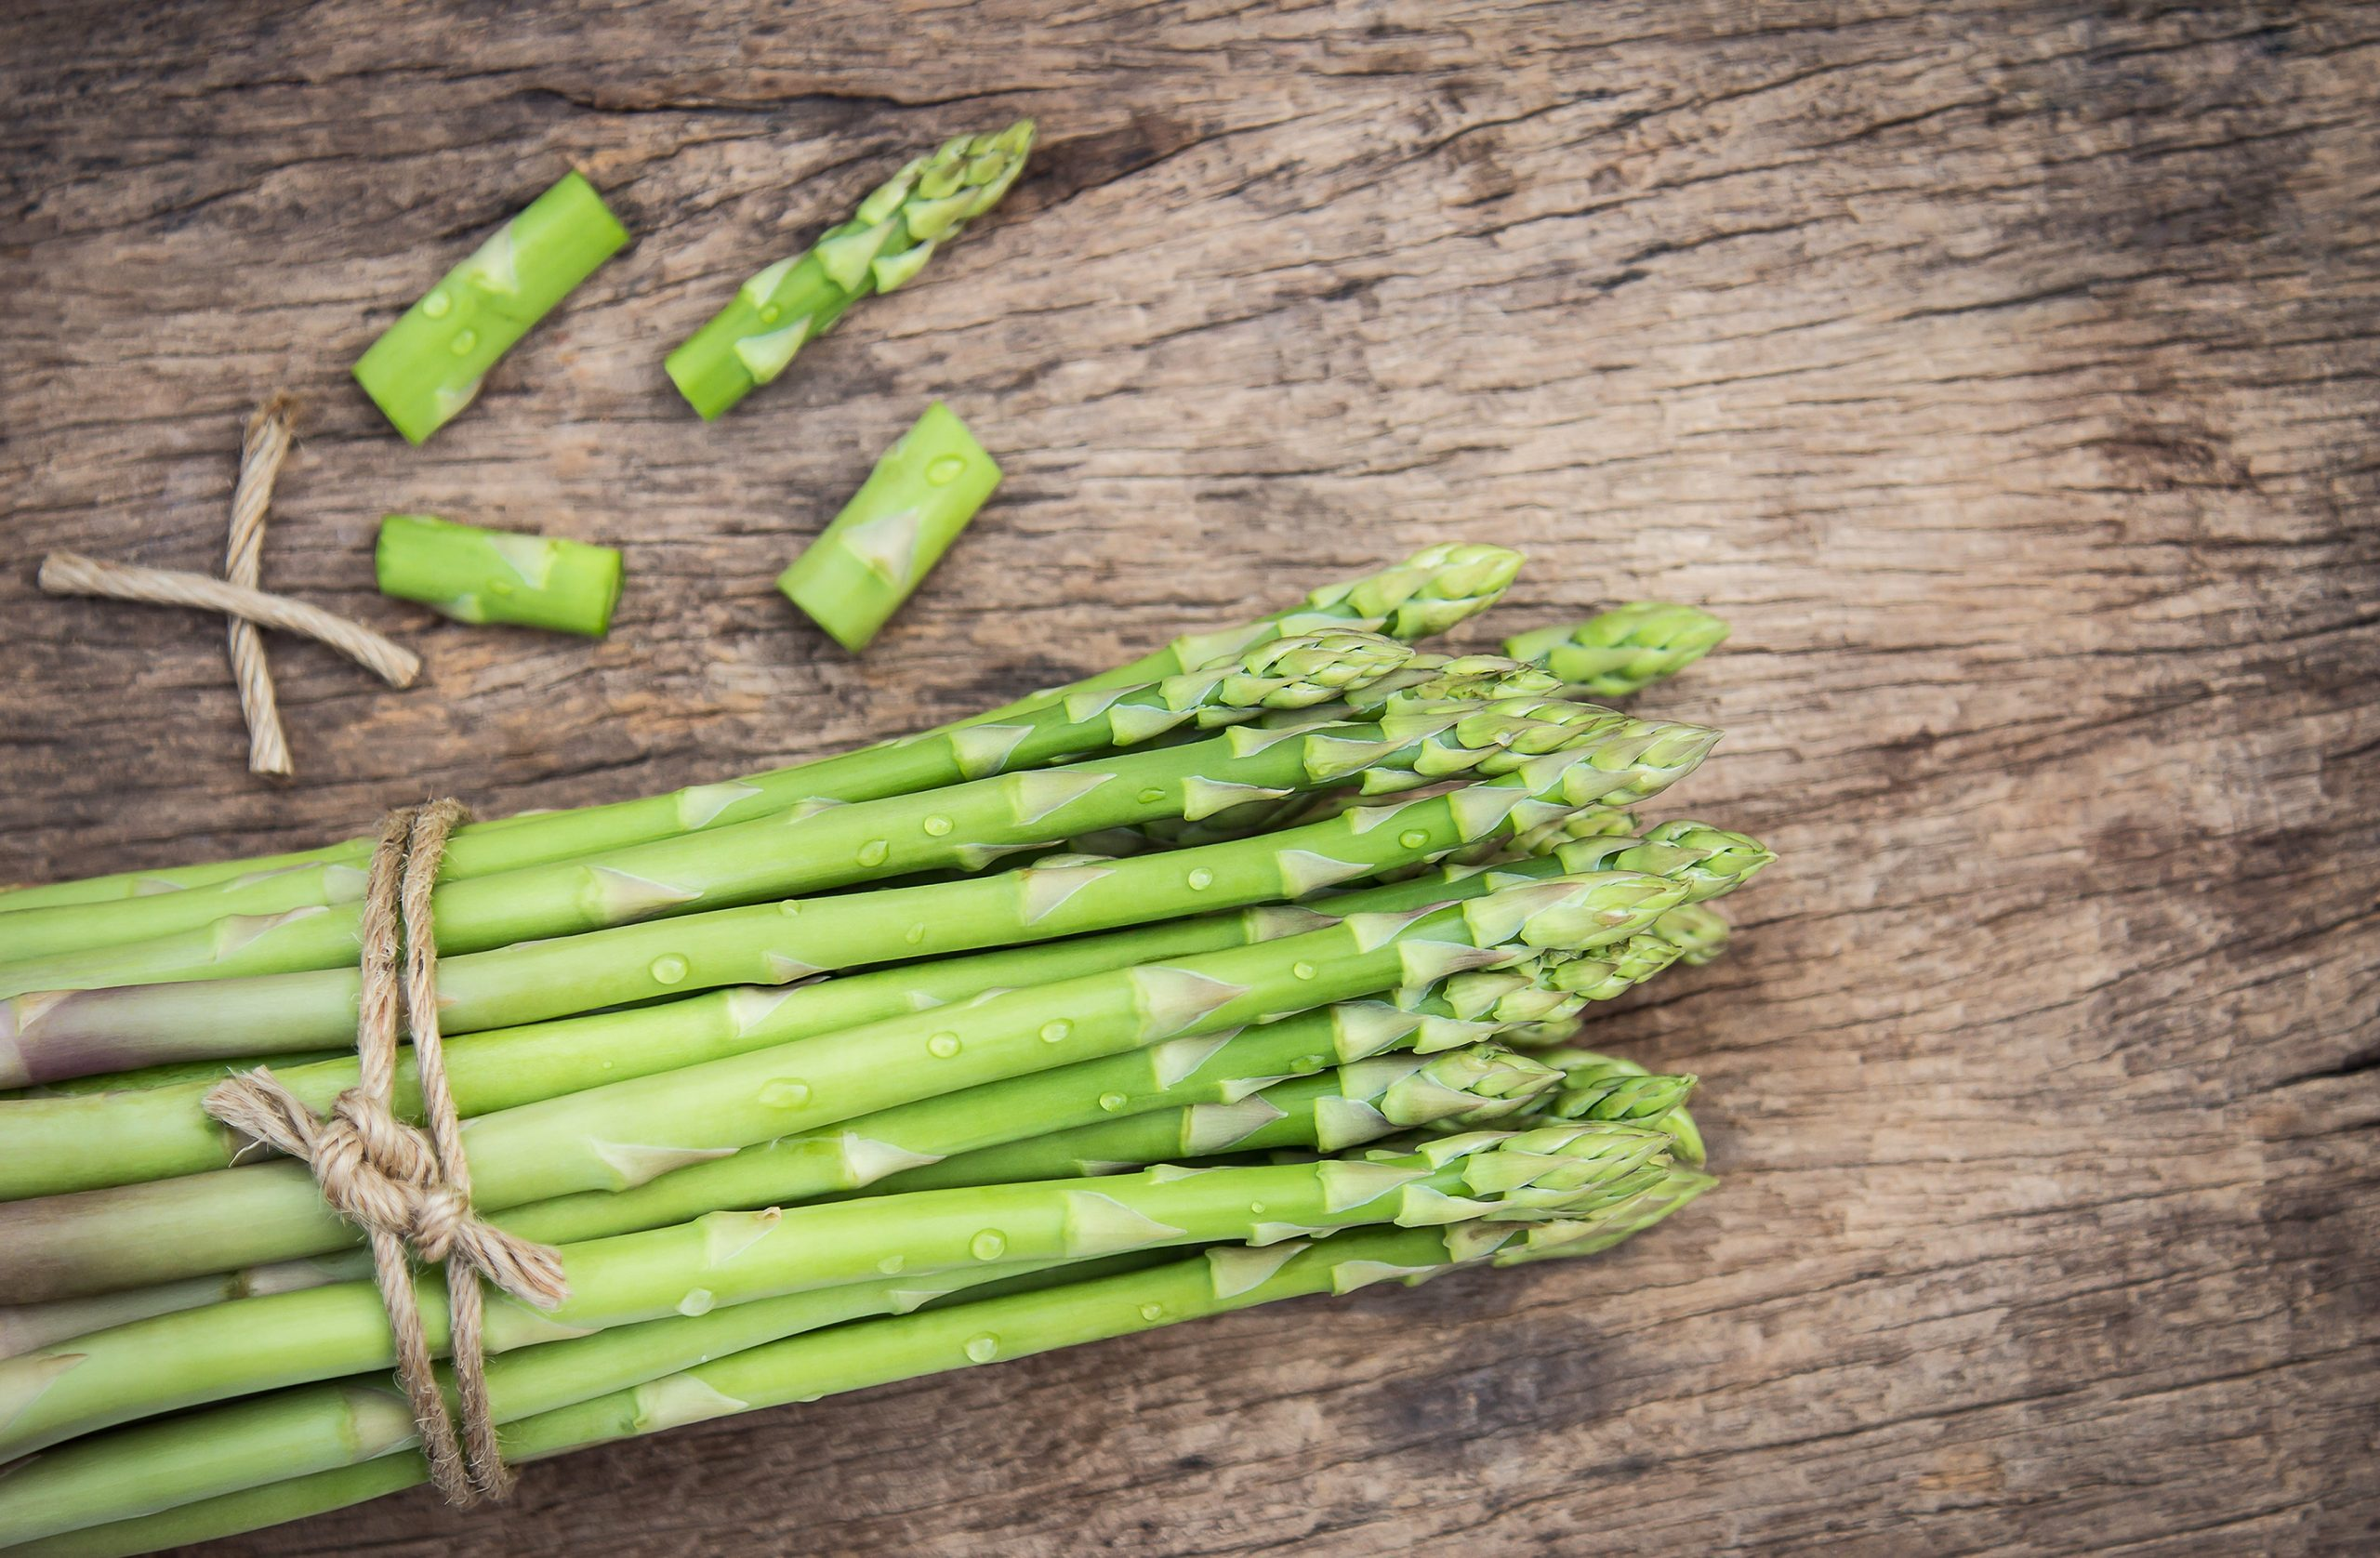 #8 Stress-busting food: Asparagus. Photo byAphiwat chuangchoemfromPexels